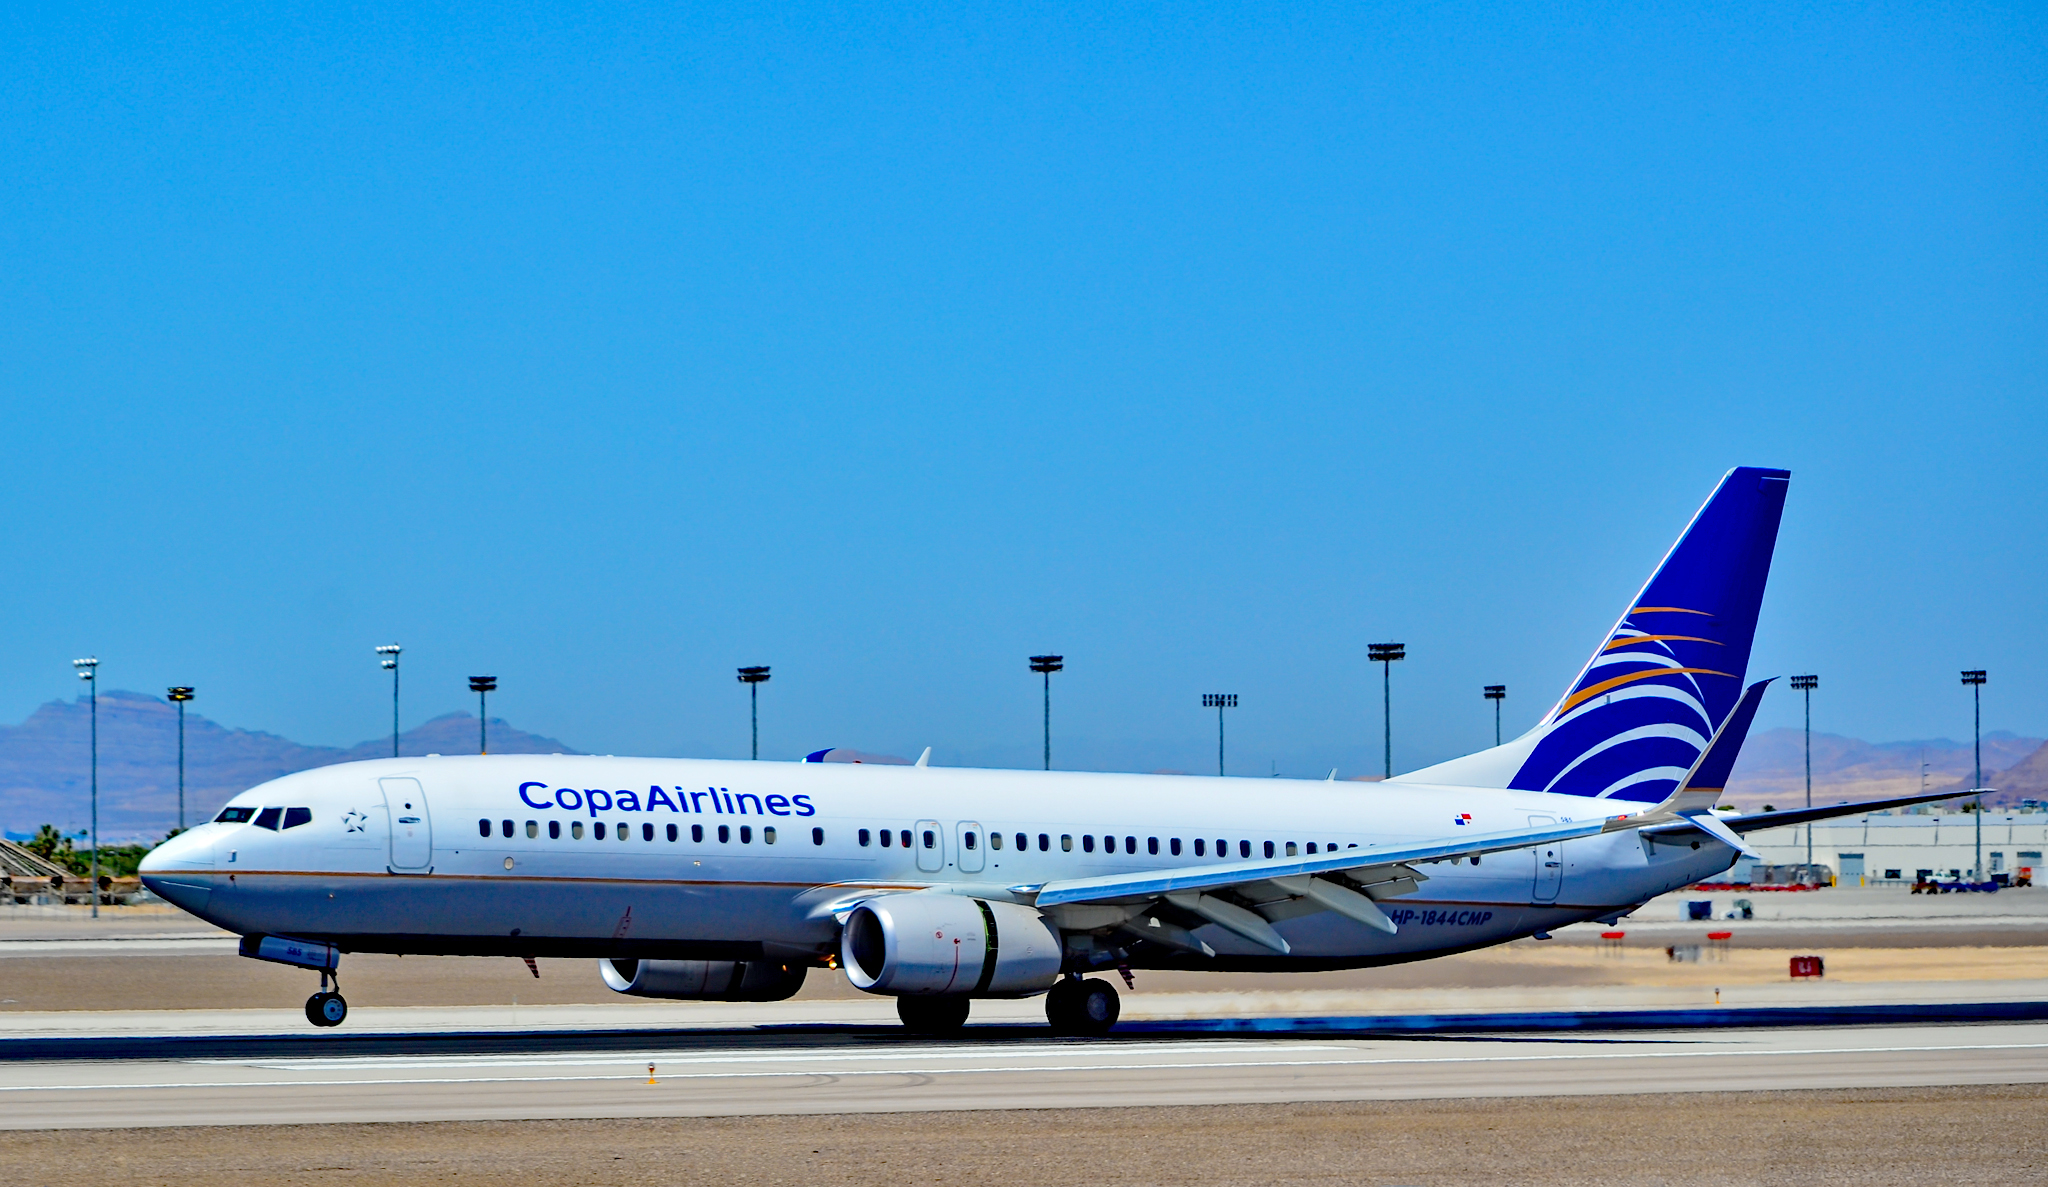 file hp 1844cmp copa airlines 2015 boeing 737 8v3 cn 40786 5342 rh commons wikimedia org